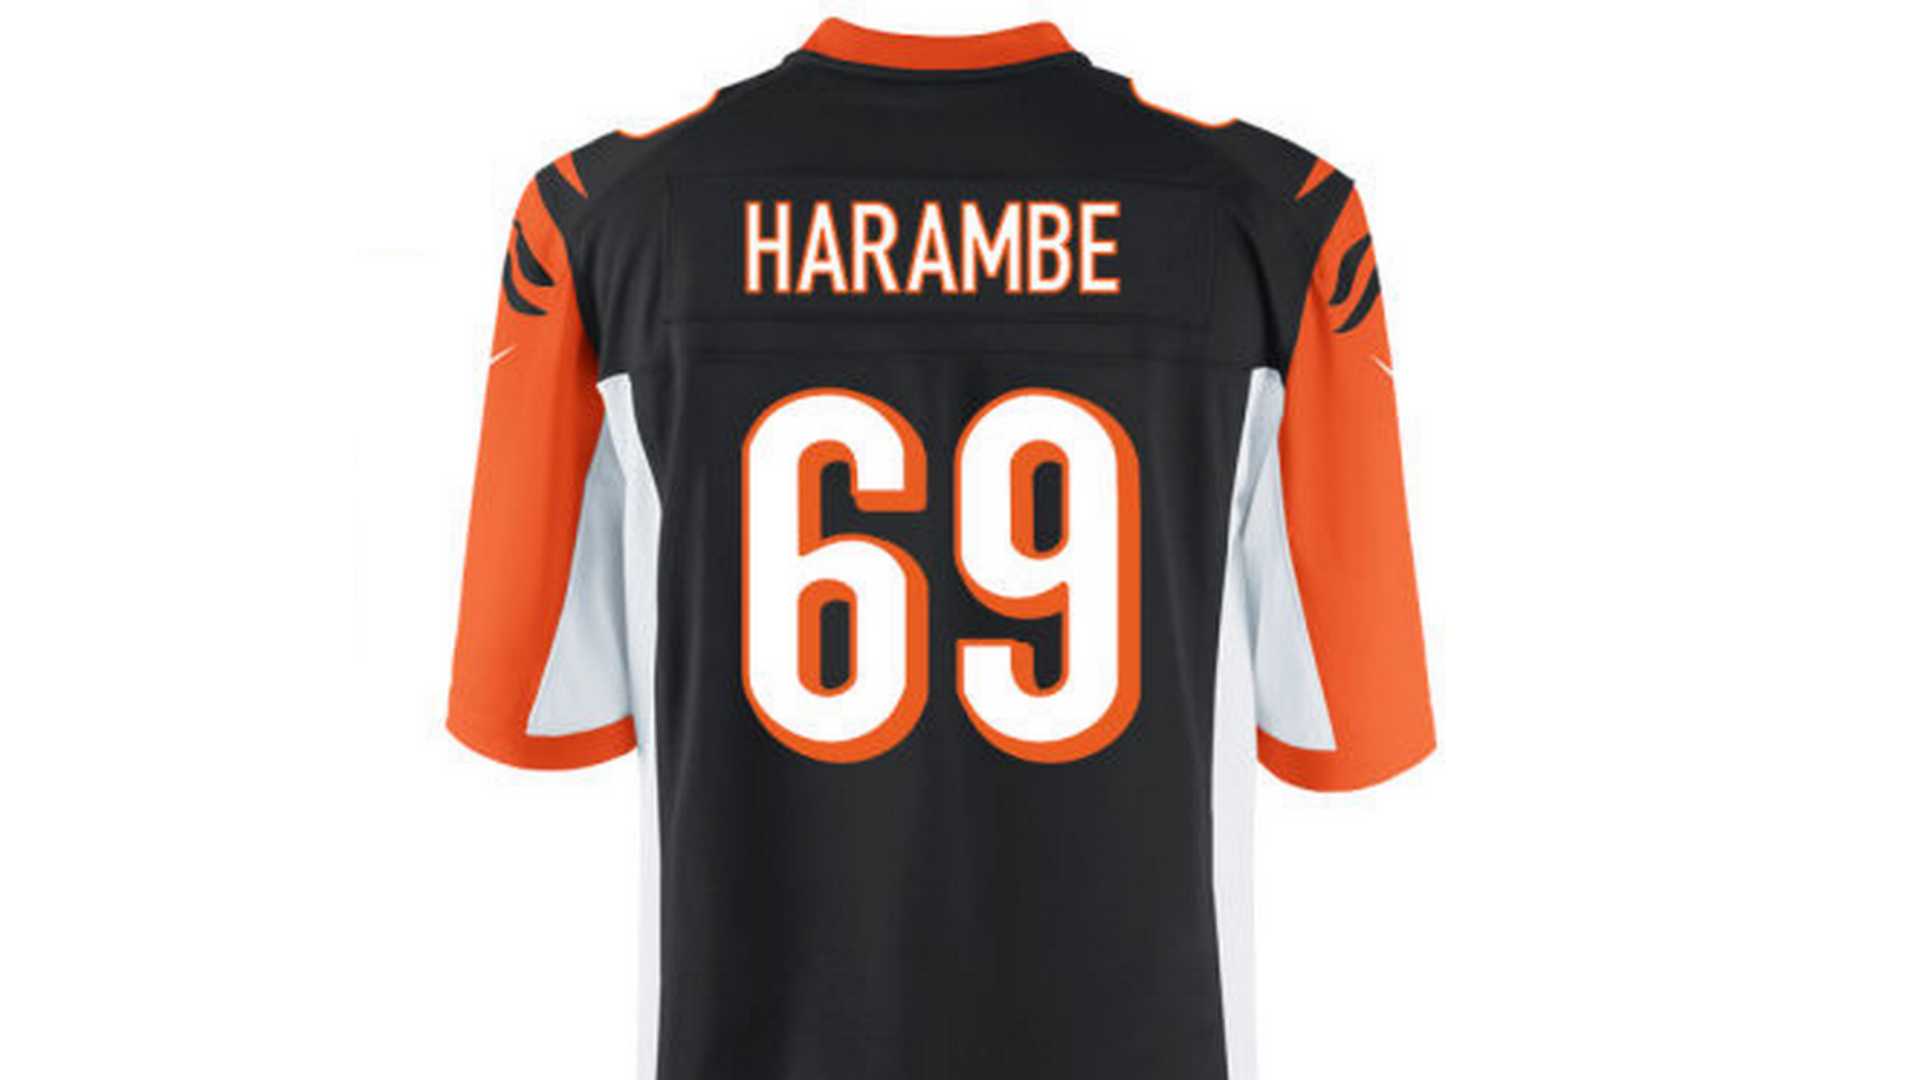 Again Nfl Harambe's At Legacy Honor Can You News Shop Sporting bcaeecbcecfbbeabffe|Black Leather-based Jackets